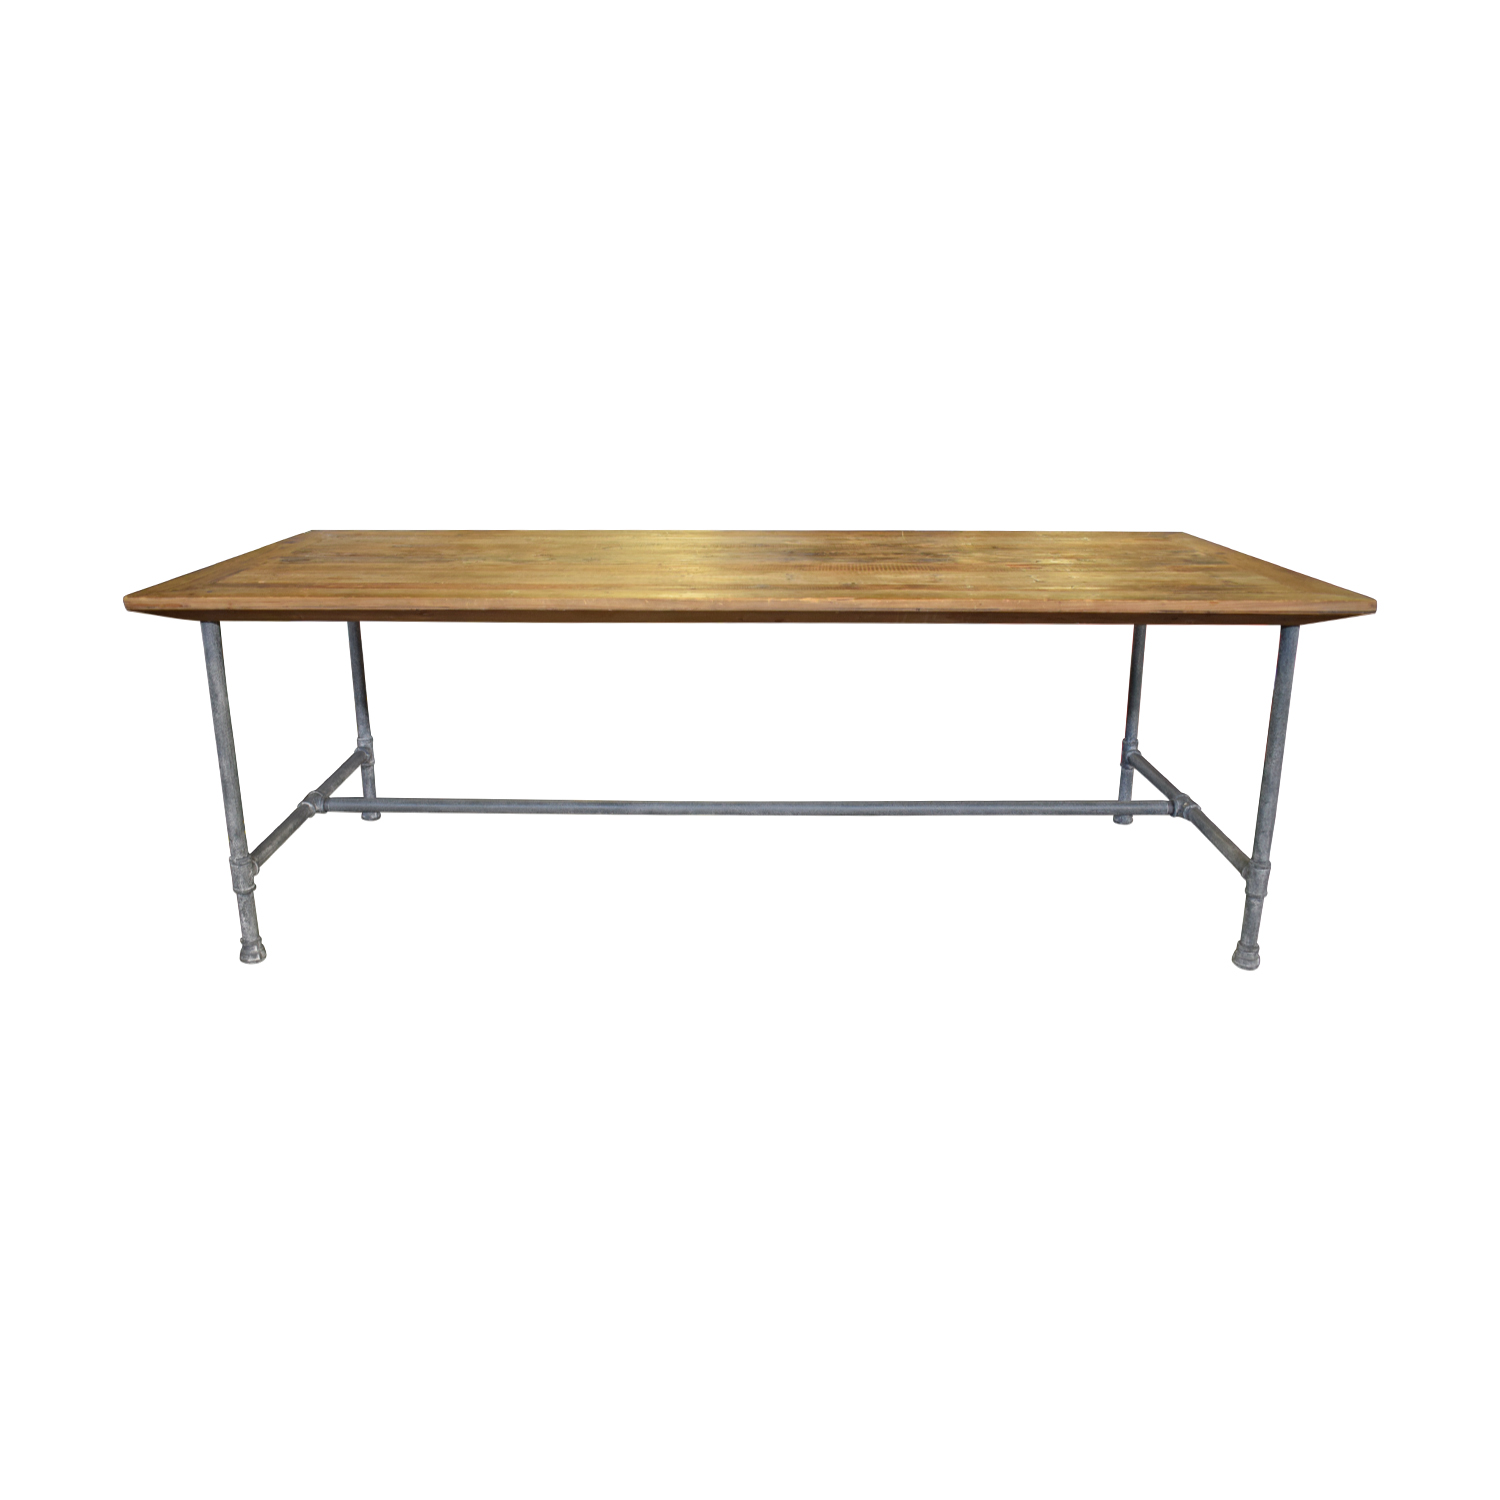 ABC Carpet & Home ABC Carpet & Home Rustic Wood Dining Table second hand